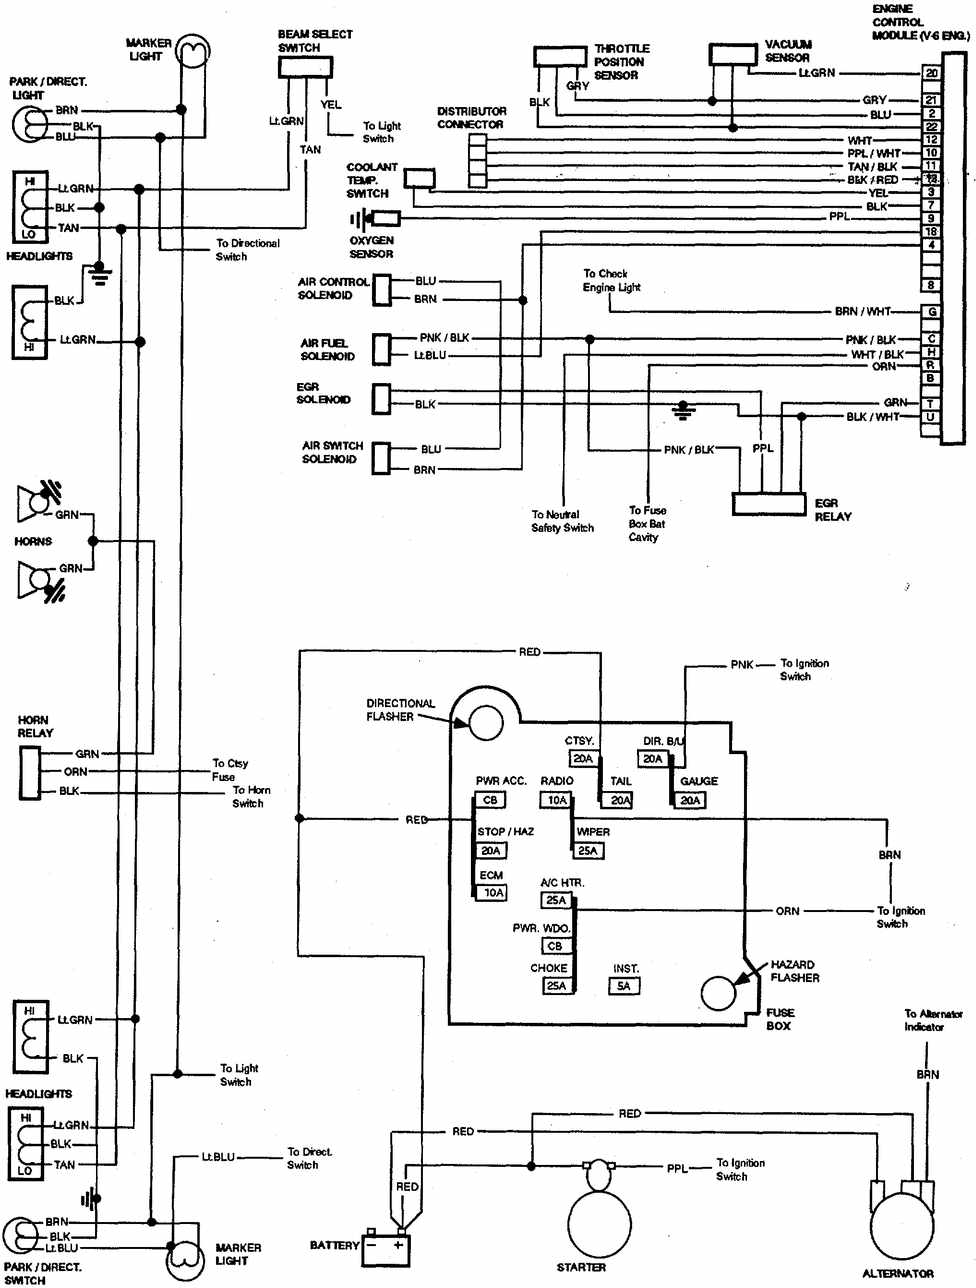 2005 chevy express wiring diagram